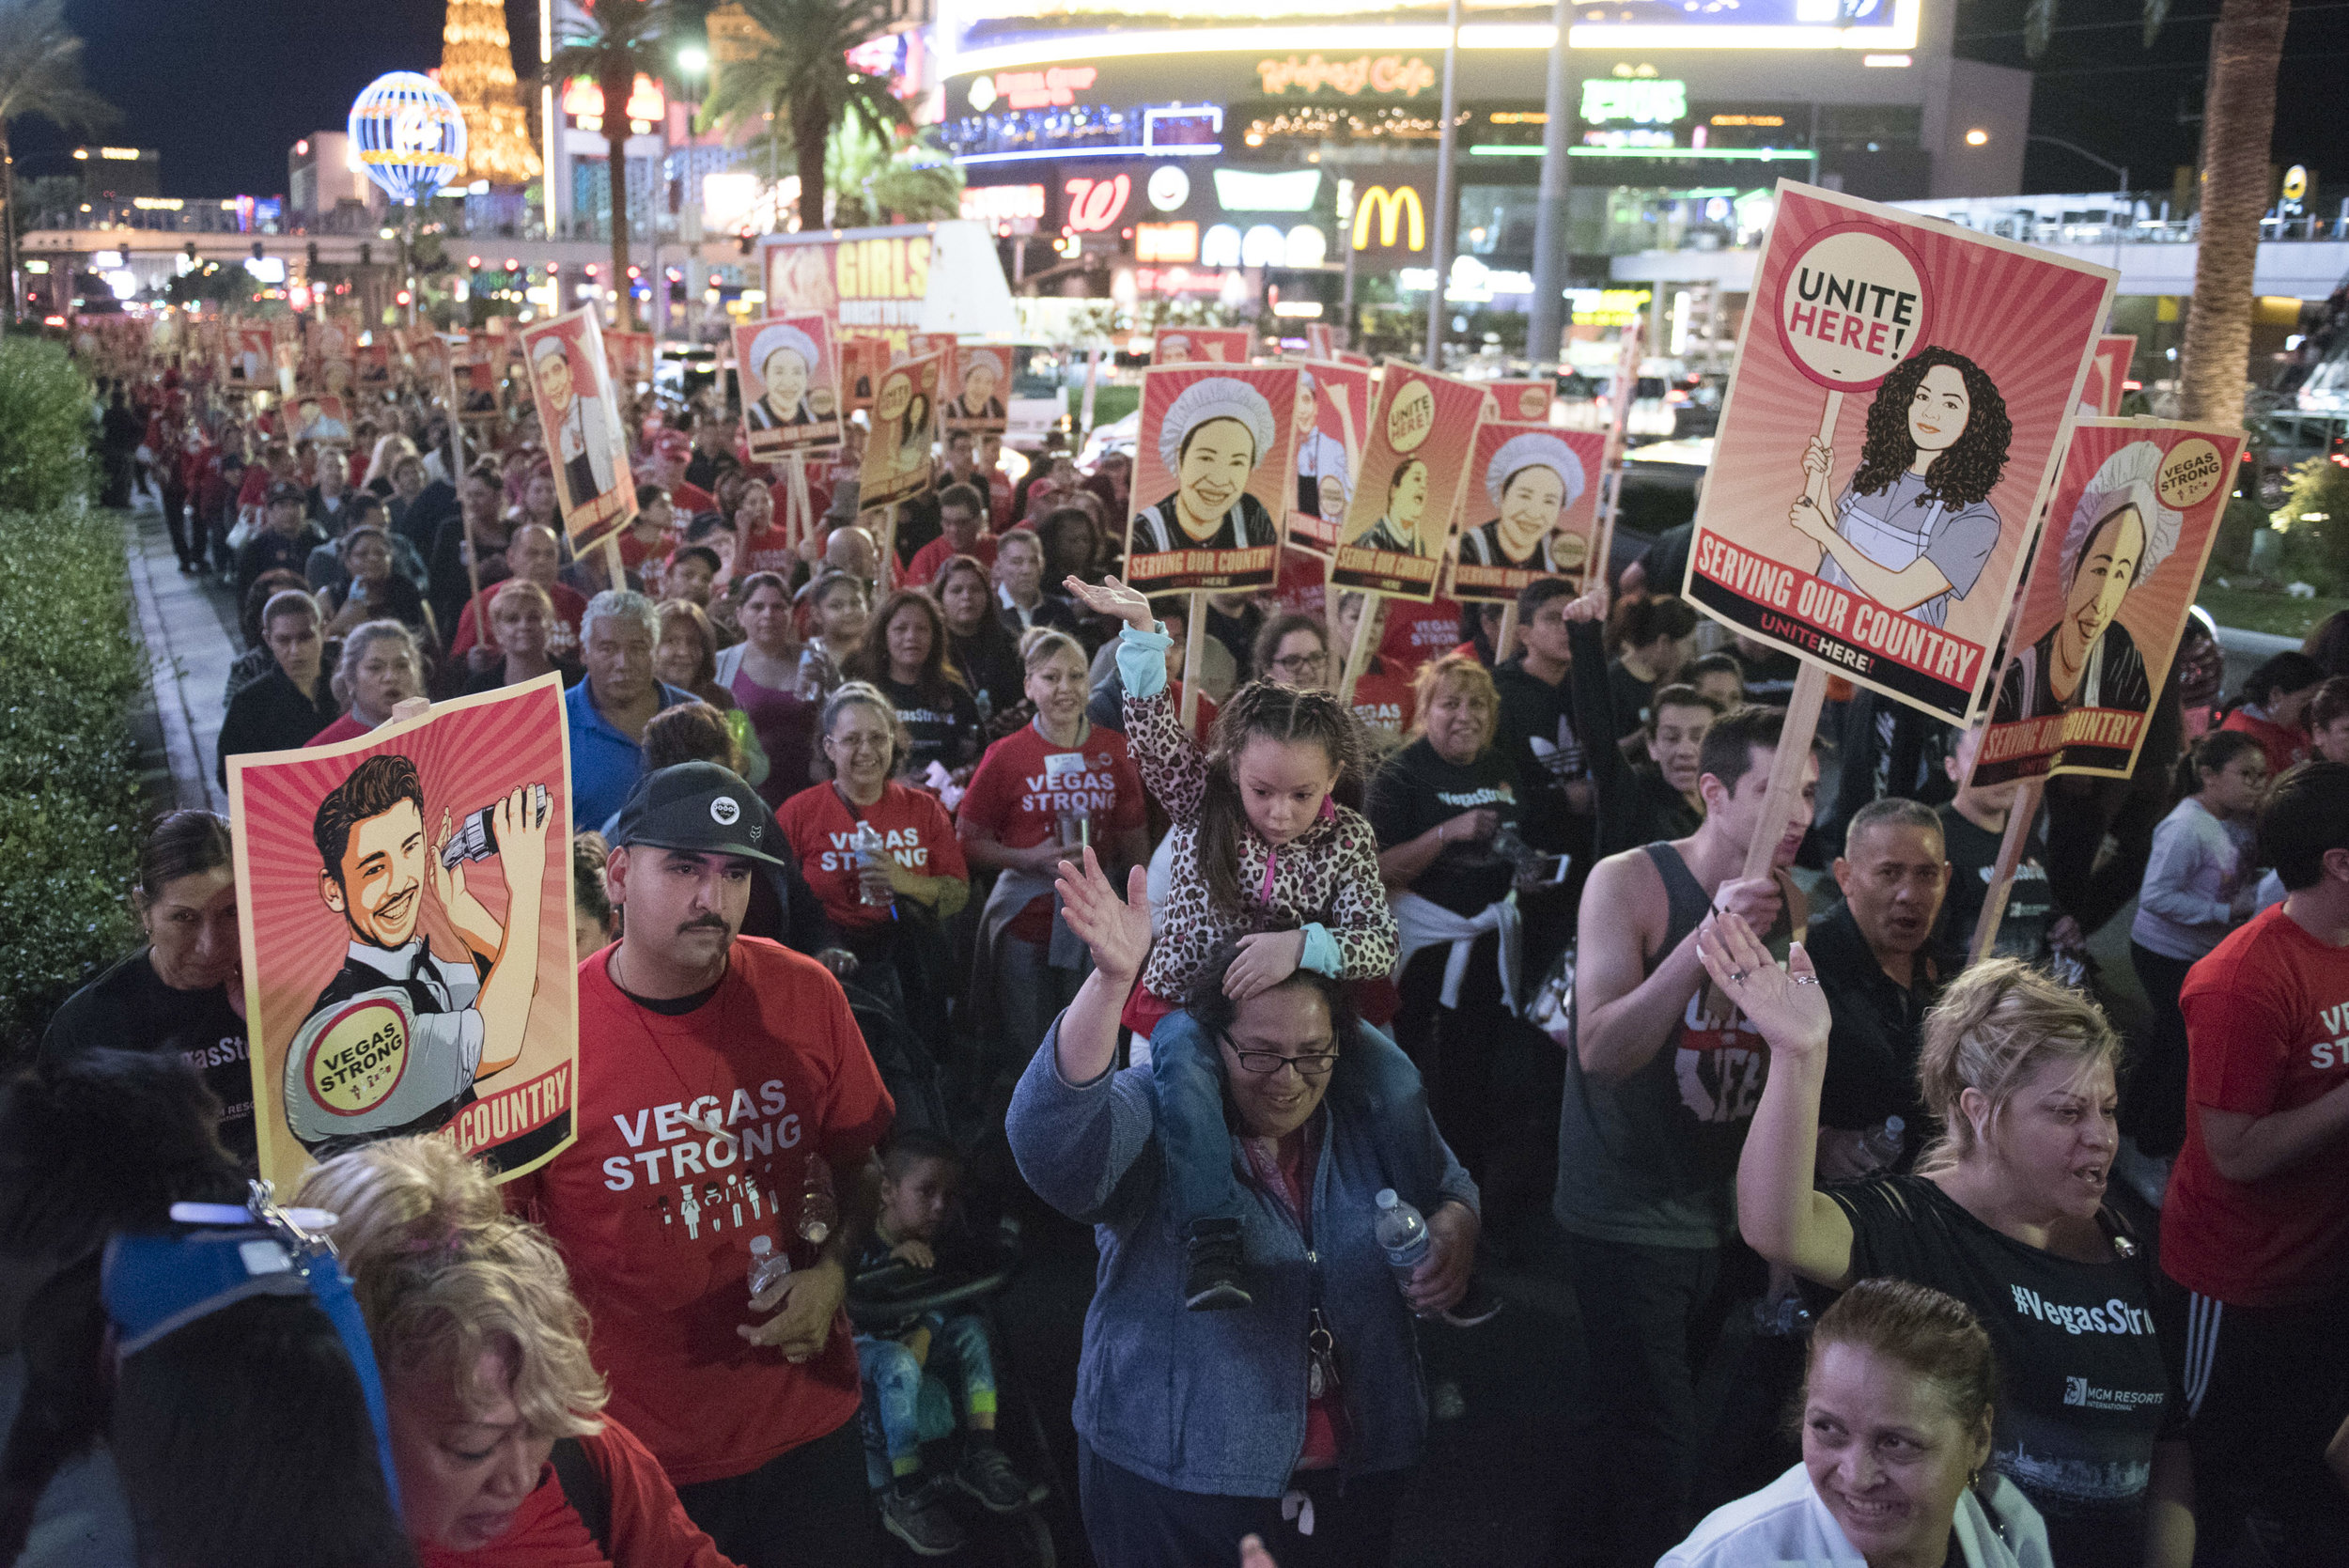 Thousands of Culinary Workers Union Local 226, Unite Here! Bartenders Local #165 and pro-union supporters march along the Las Vegas Strip.